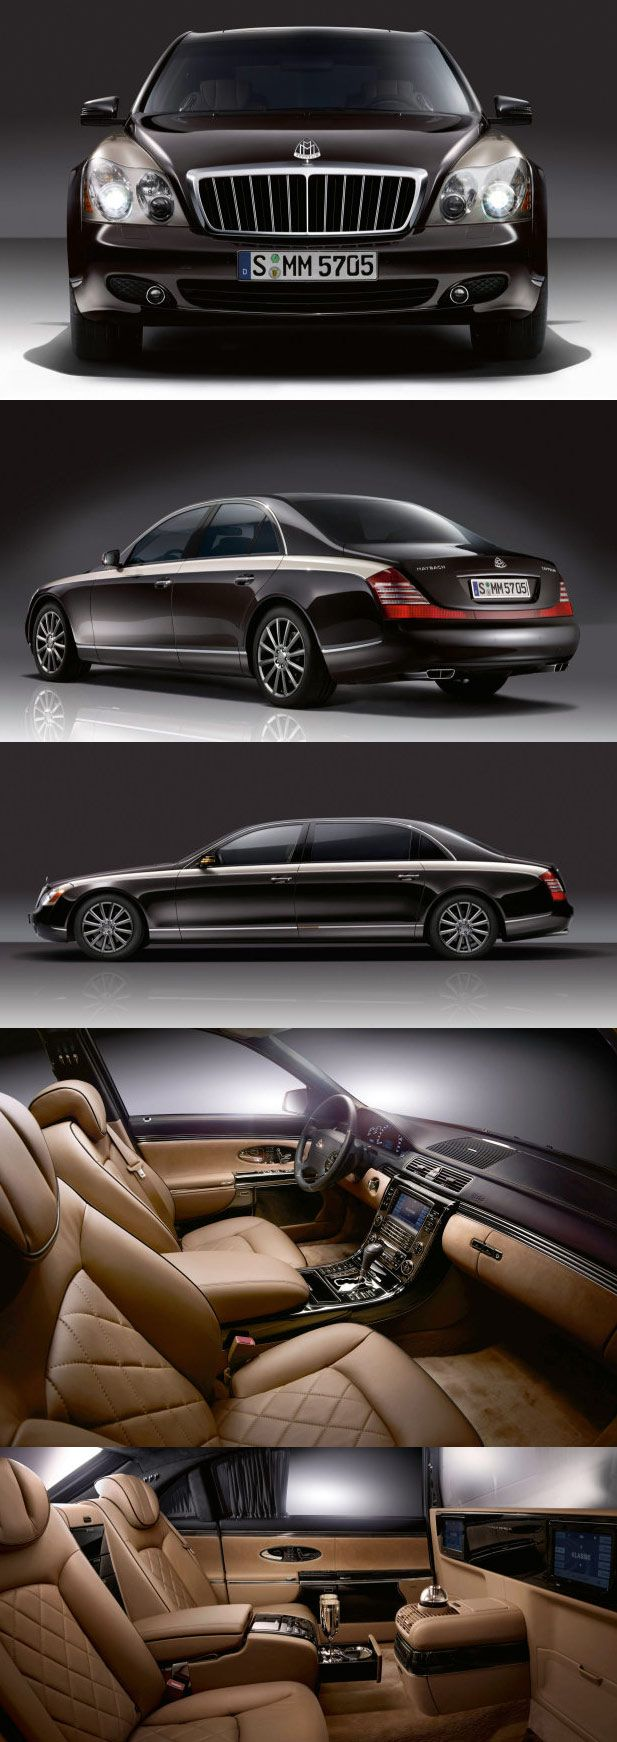 MAYBACH Zeppelin #Car Lover? Visit Us at www.rvinyl.com #Rvinyl and see what we can do for you!